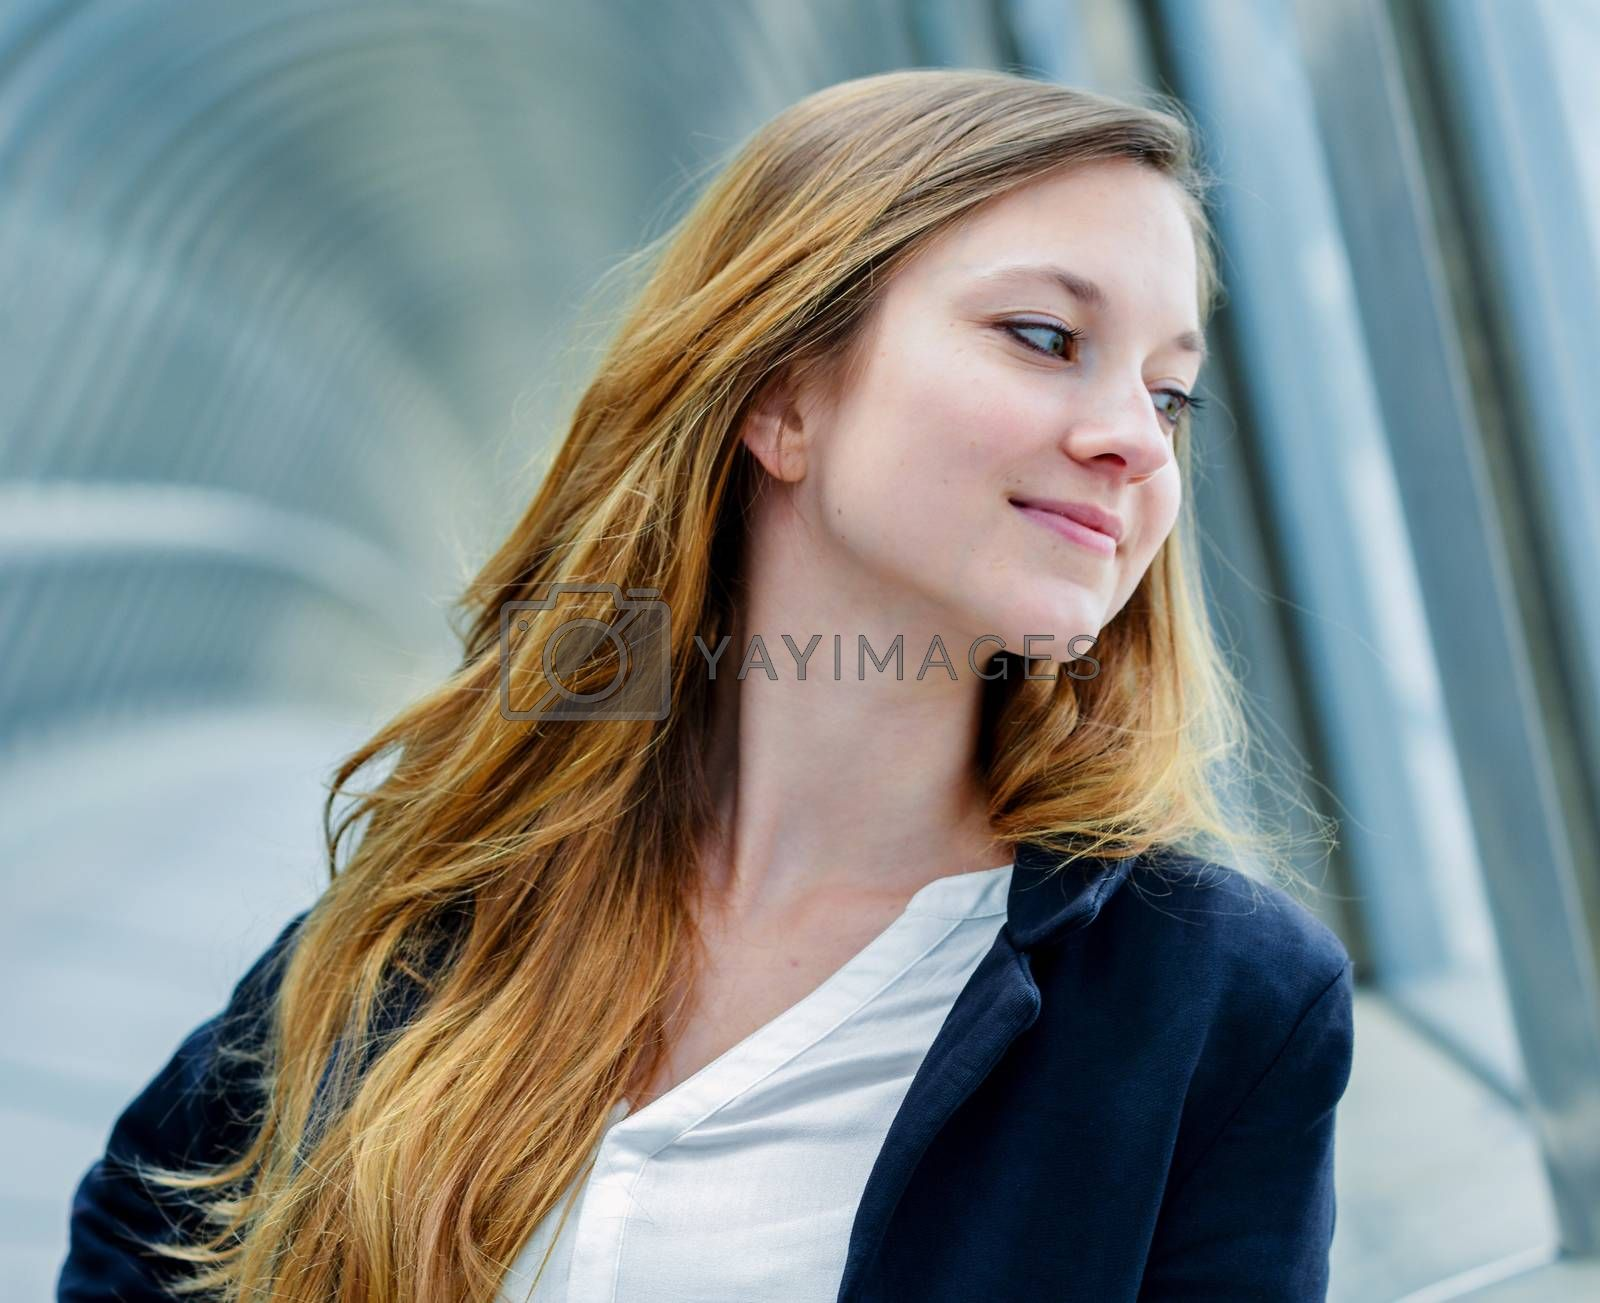 Royalty free image of Outdoor portrait of a pretty dynamic junior executive by pixinoo